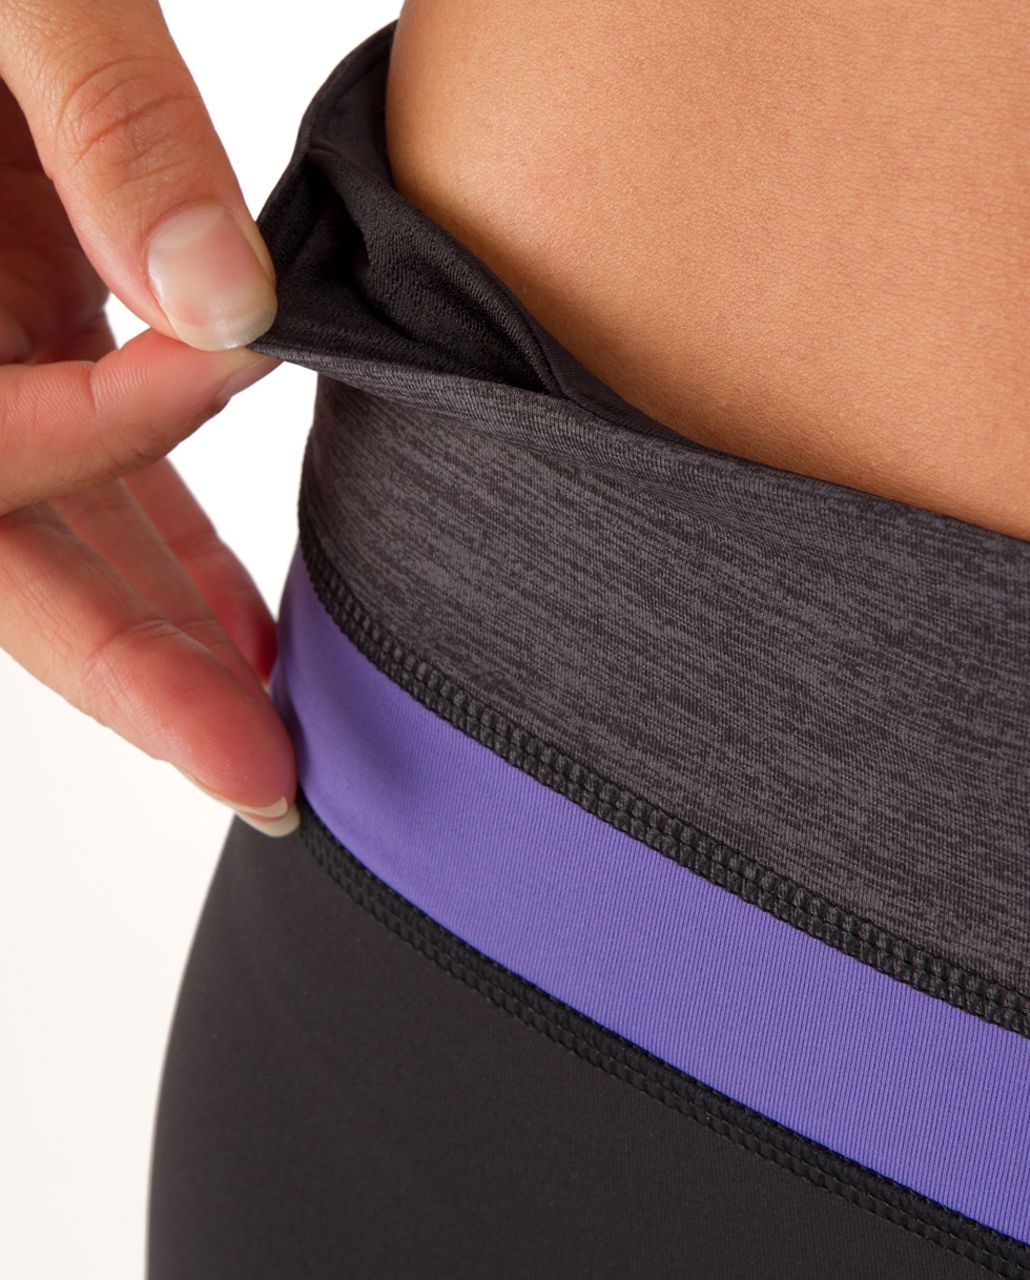 Lululemon Run: Inspire Crop II - Persian Purple / Heathered Dark Black / Black